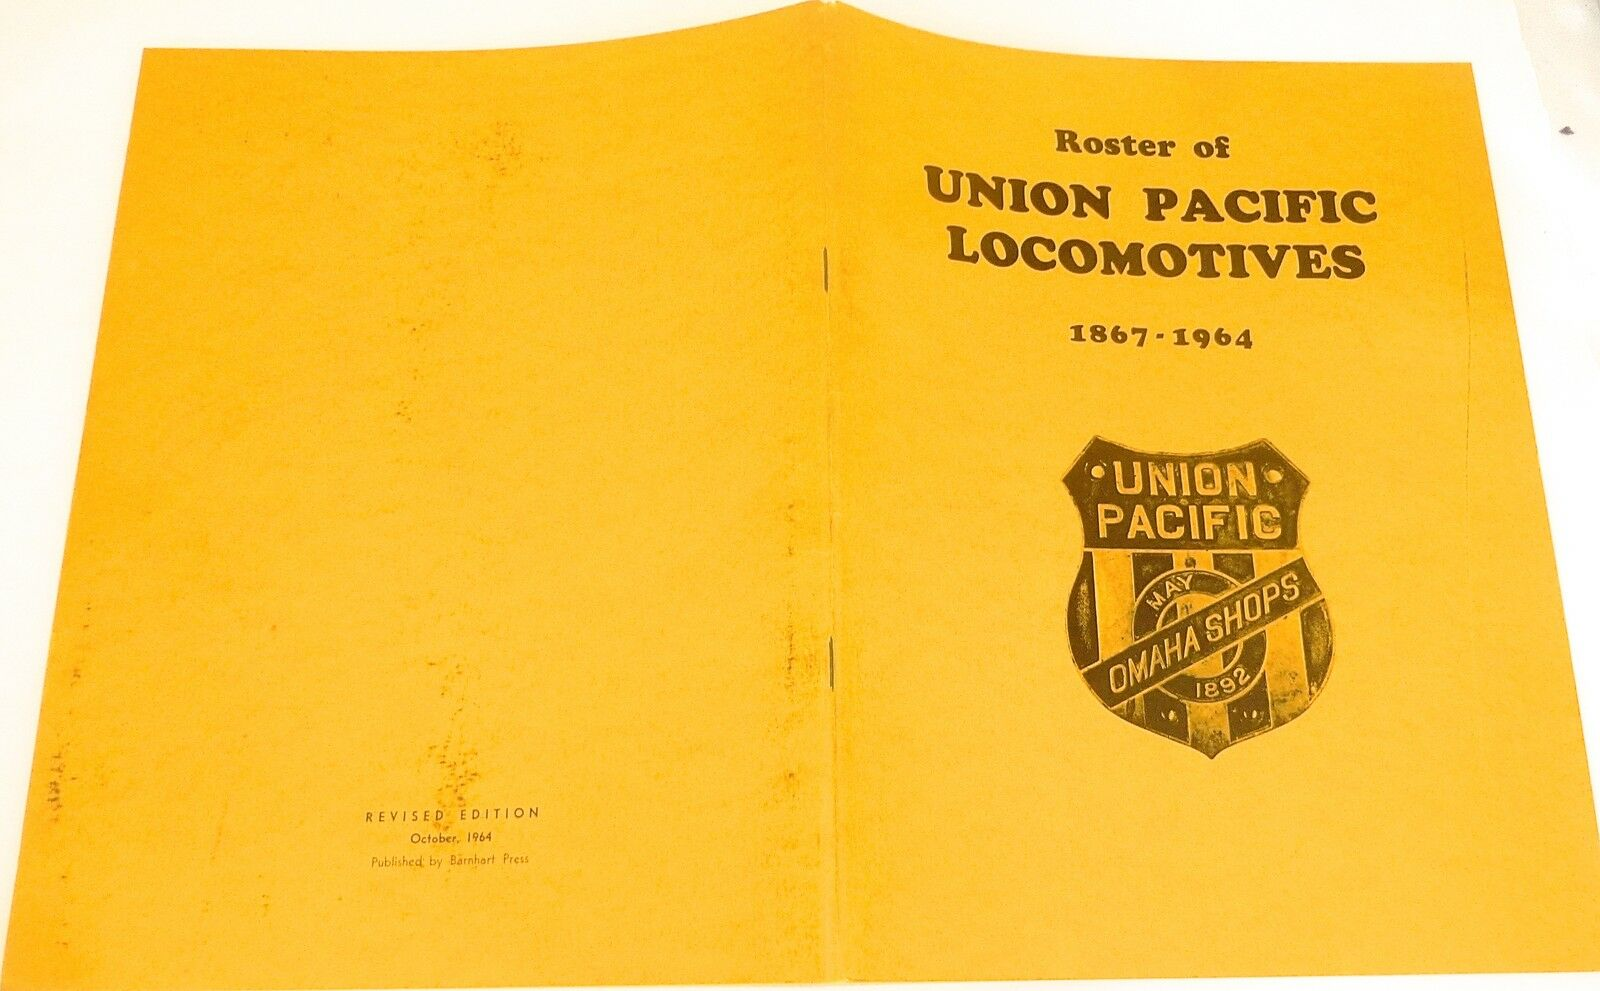 Roster of Union Pacific Locomotive 1867 1964 REVISIONATO Edizione Oct 1964 Å